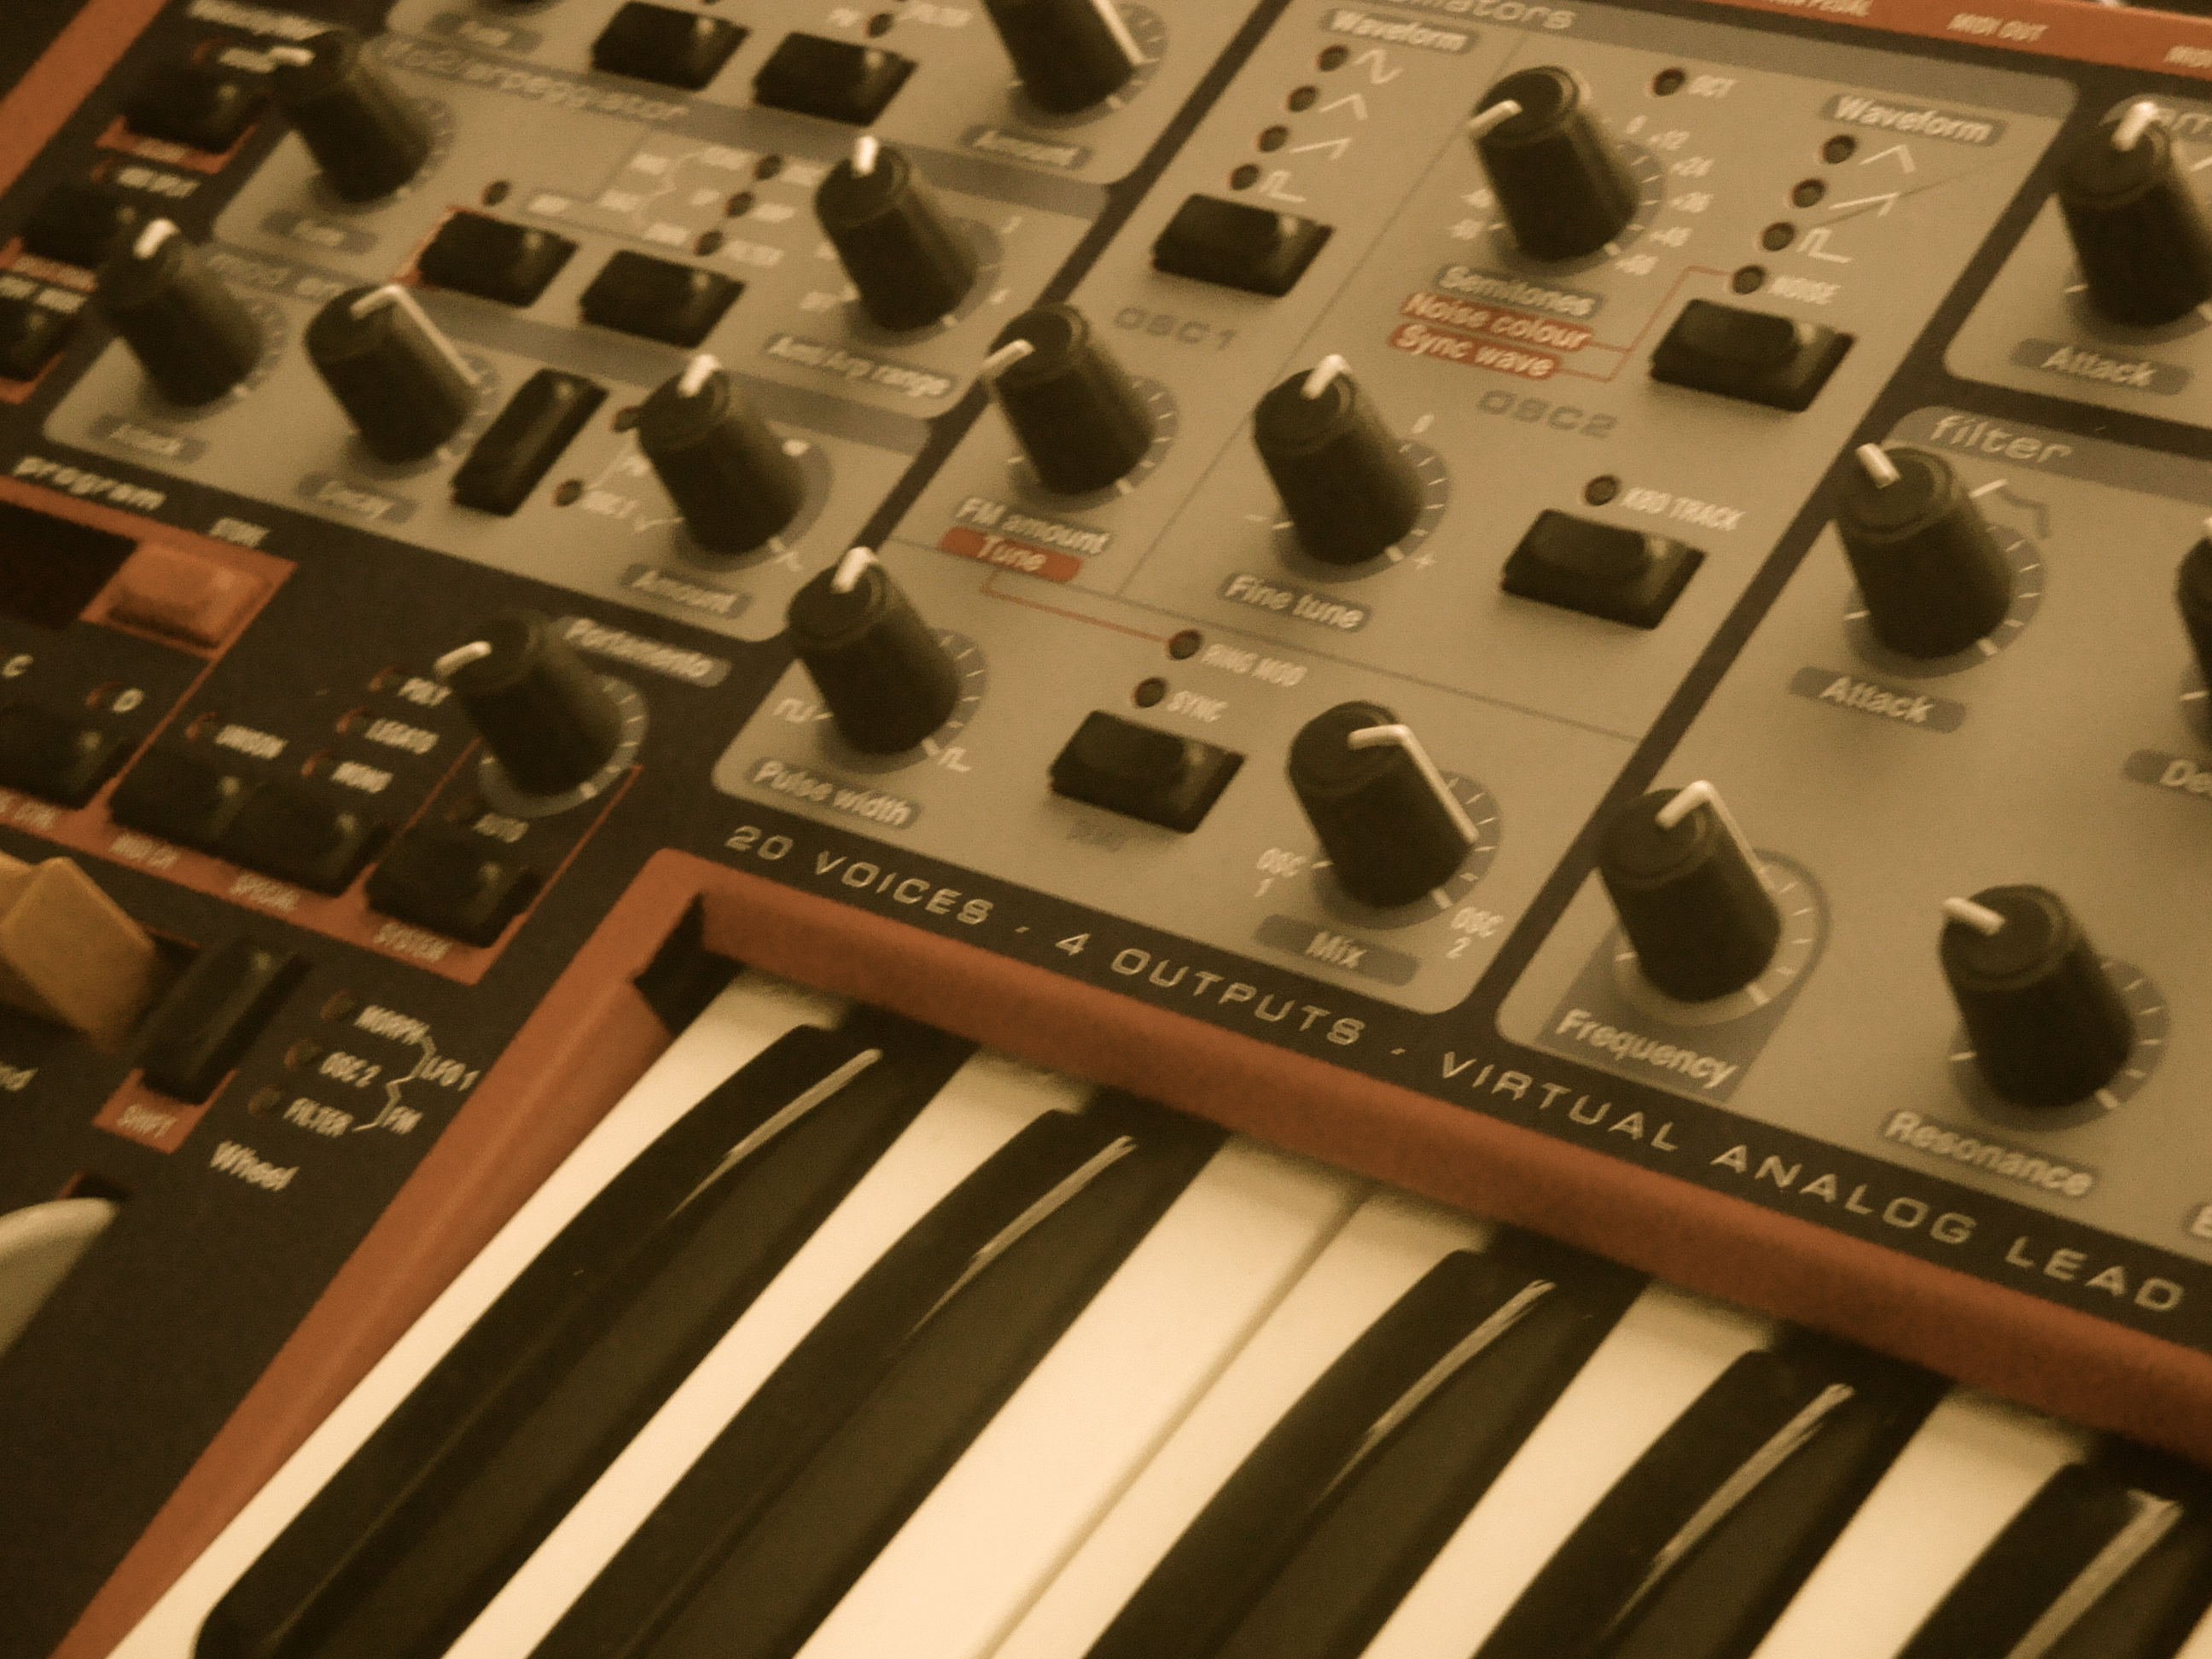 Nord+2X+Closeup+Antique